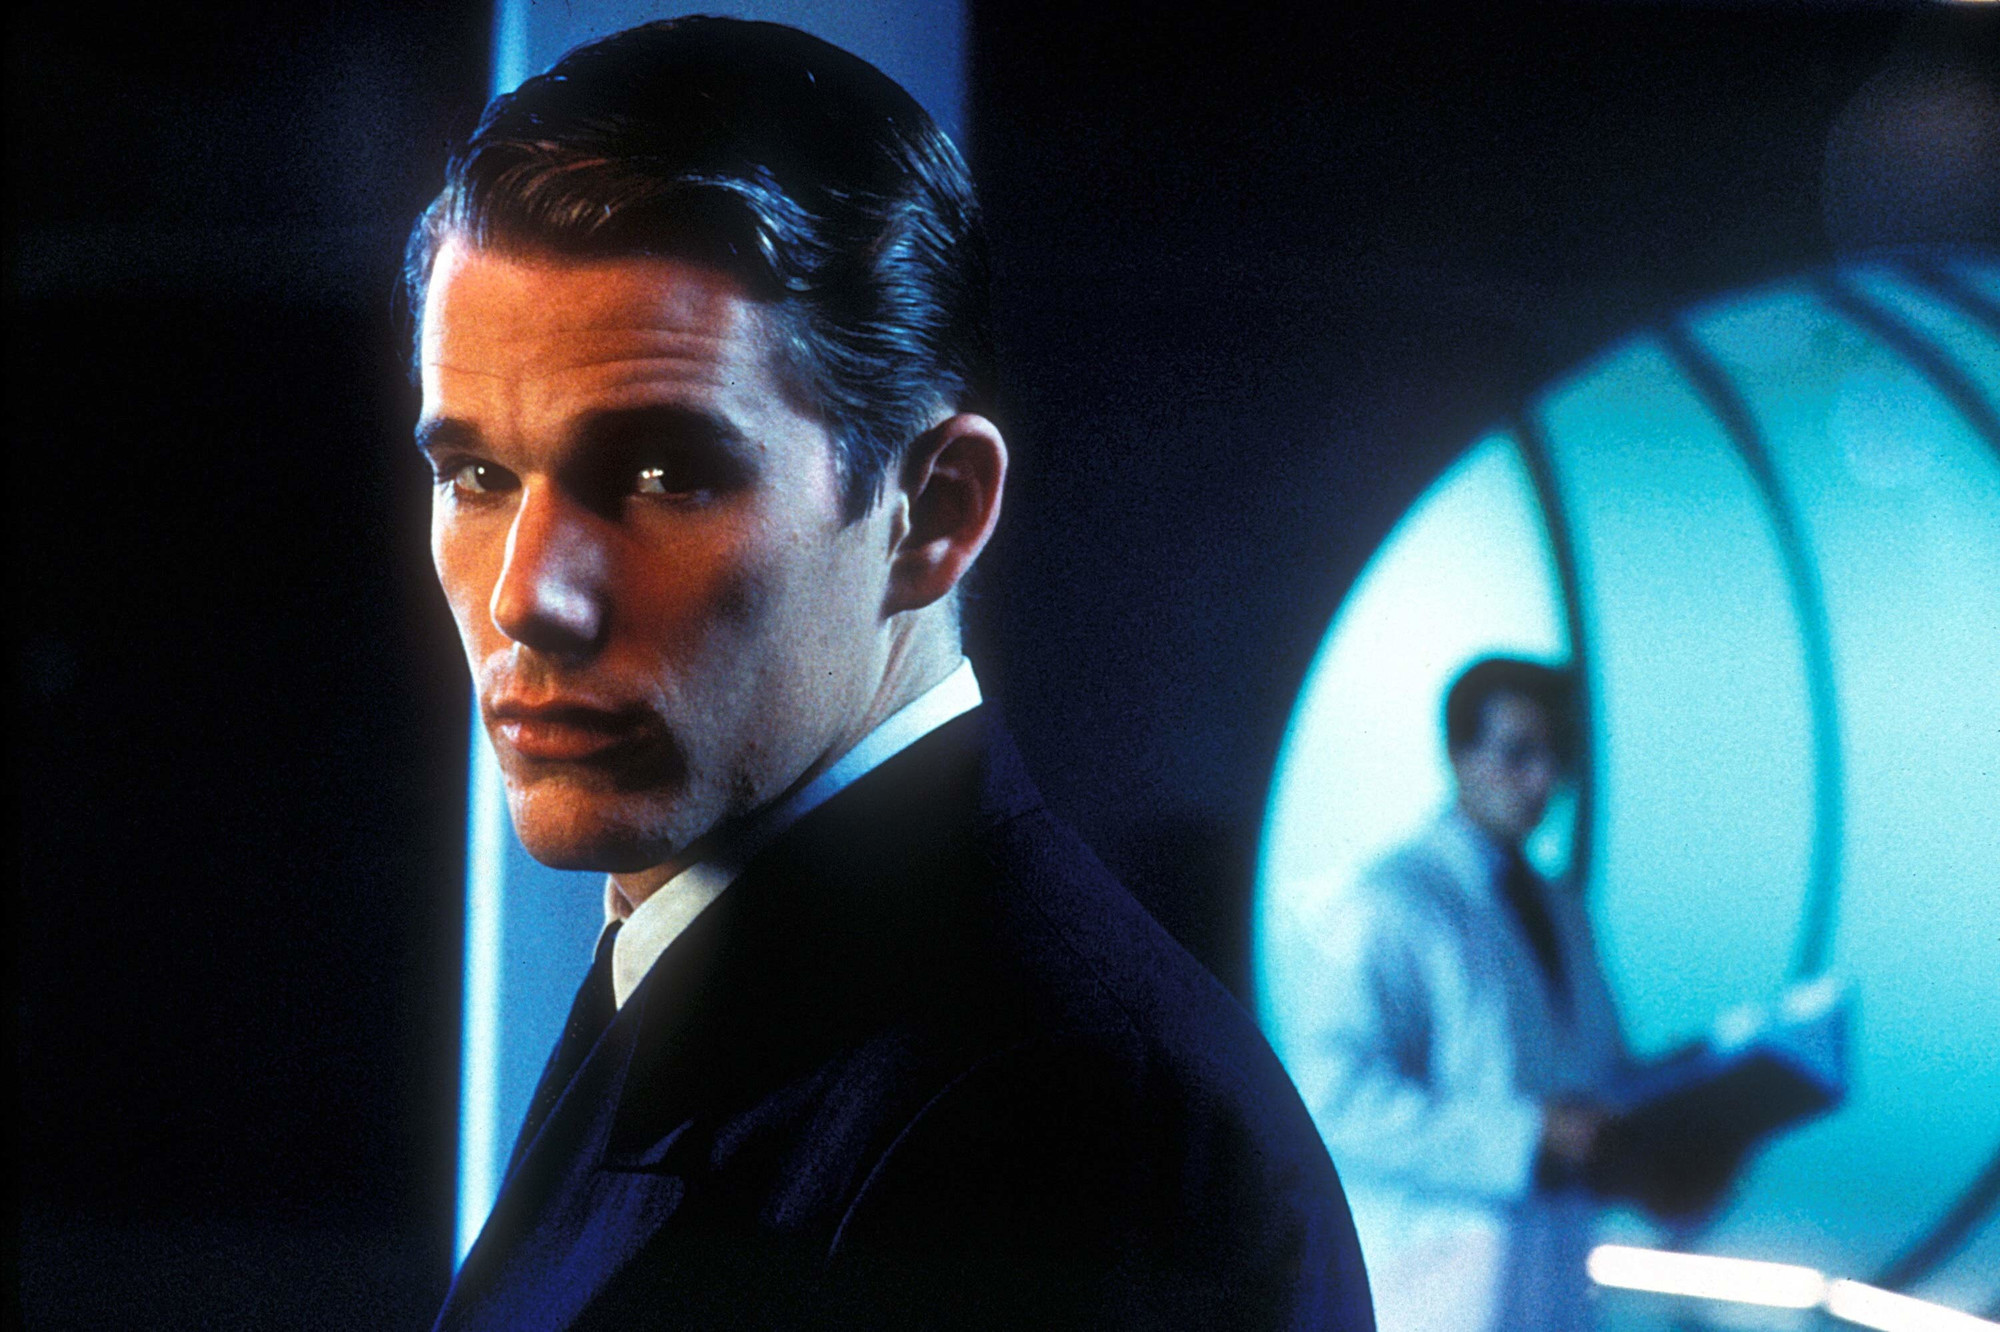 Gattaca. 1997. USA. Written and directed by Andrew Niccol. Courtesy of Photofest